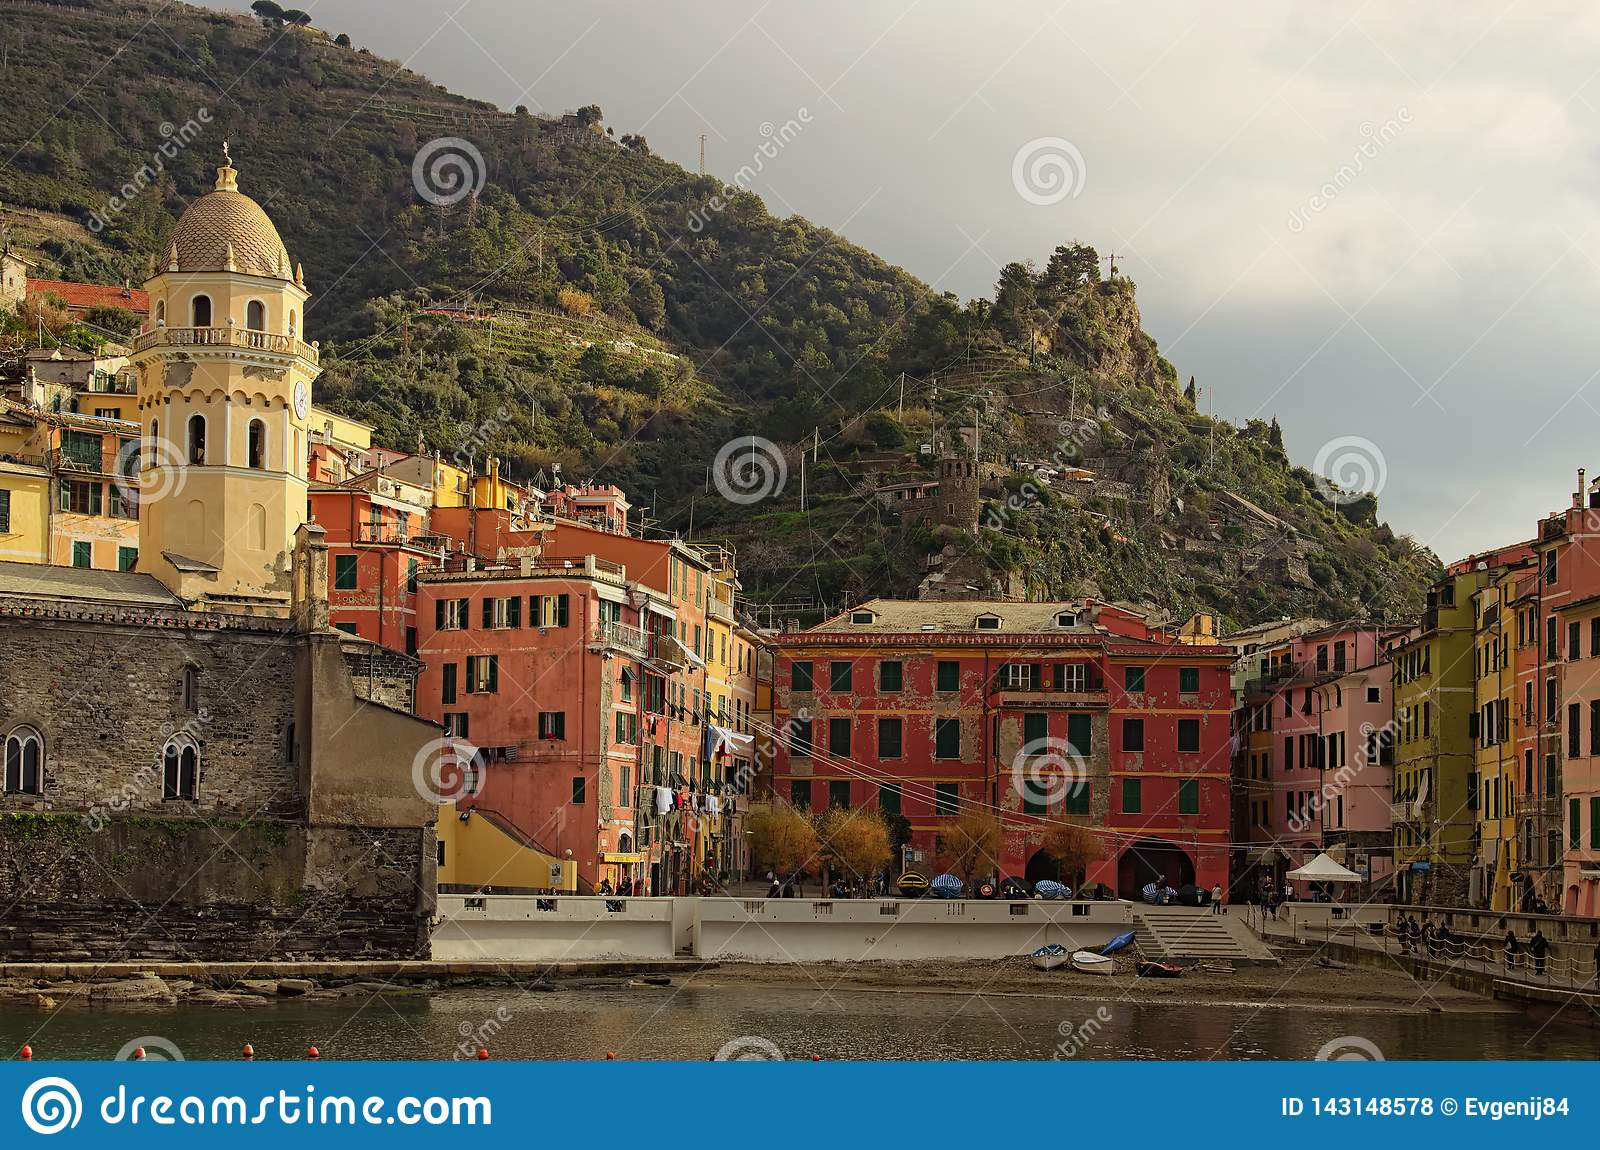 Picturesque view of the bay and the square with colorful vintage buildings. Morning landscape view